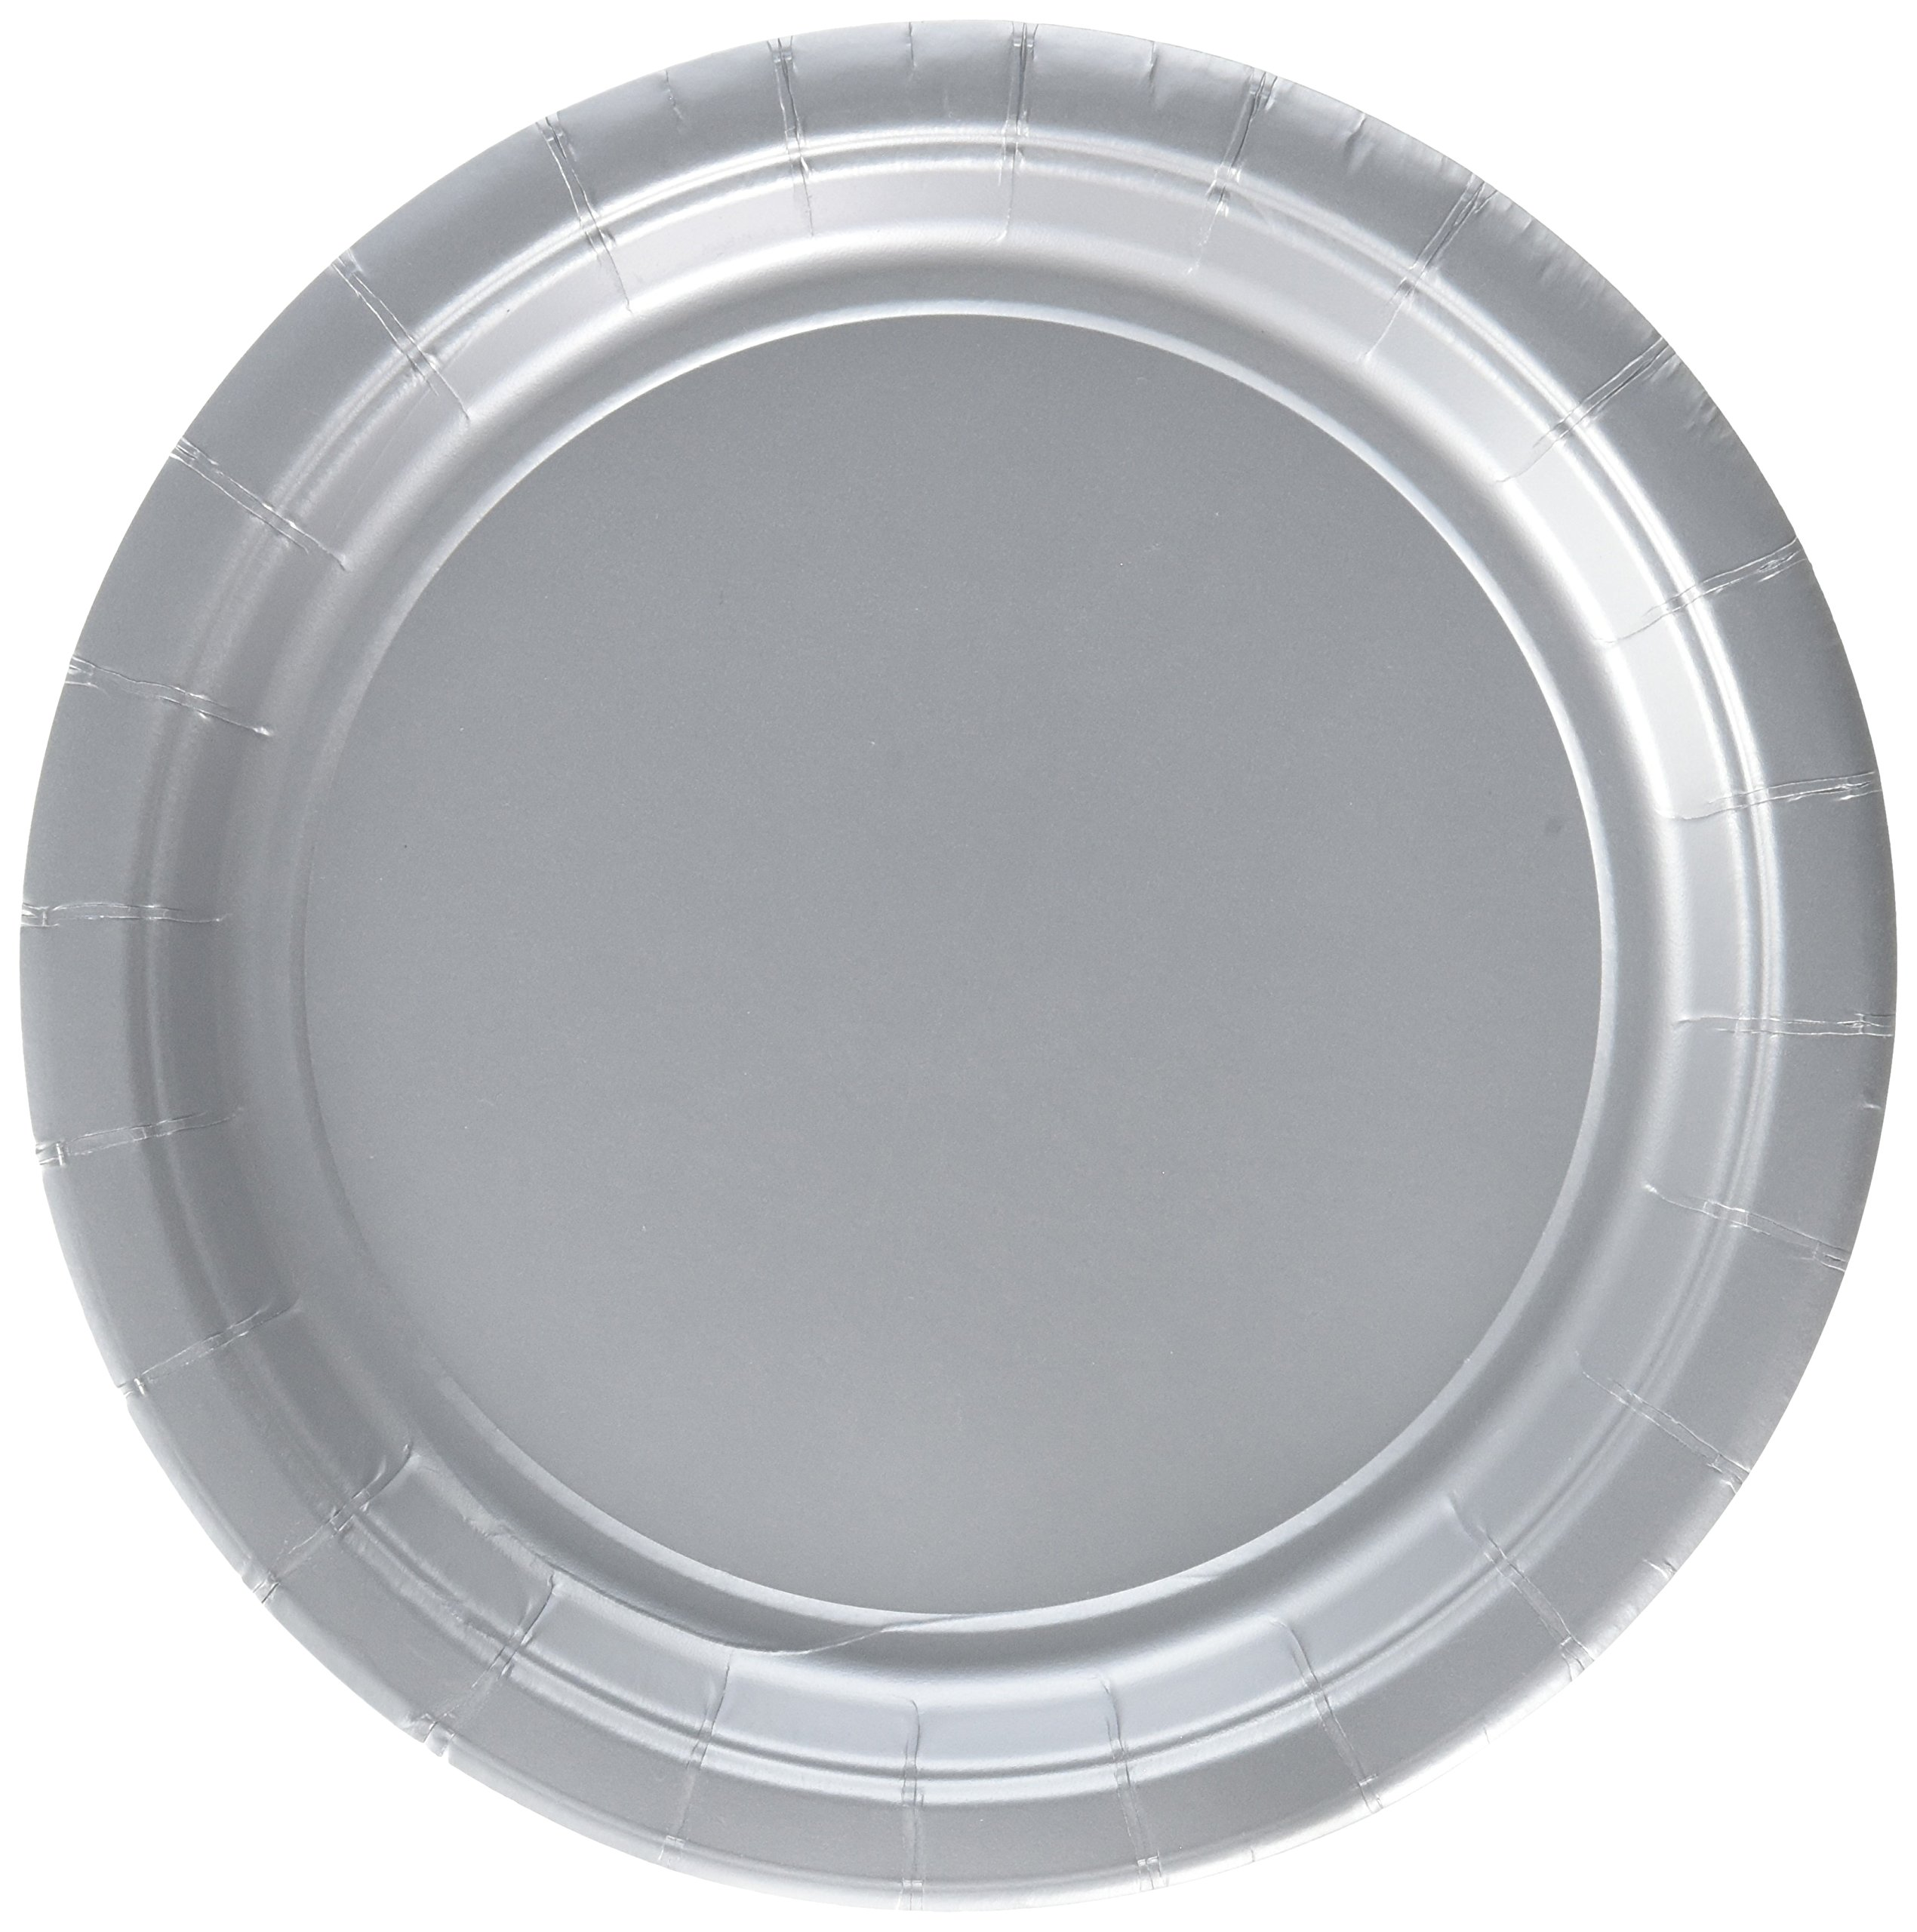 Amscan Durable Round Dessert Plates Big Bundle Party Tableware Paper, 7'', Pack of 50 Childrens, Silver, 7''